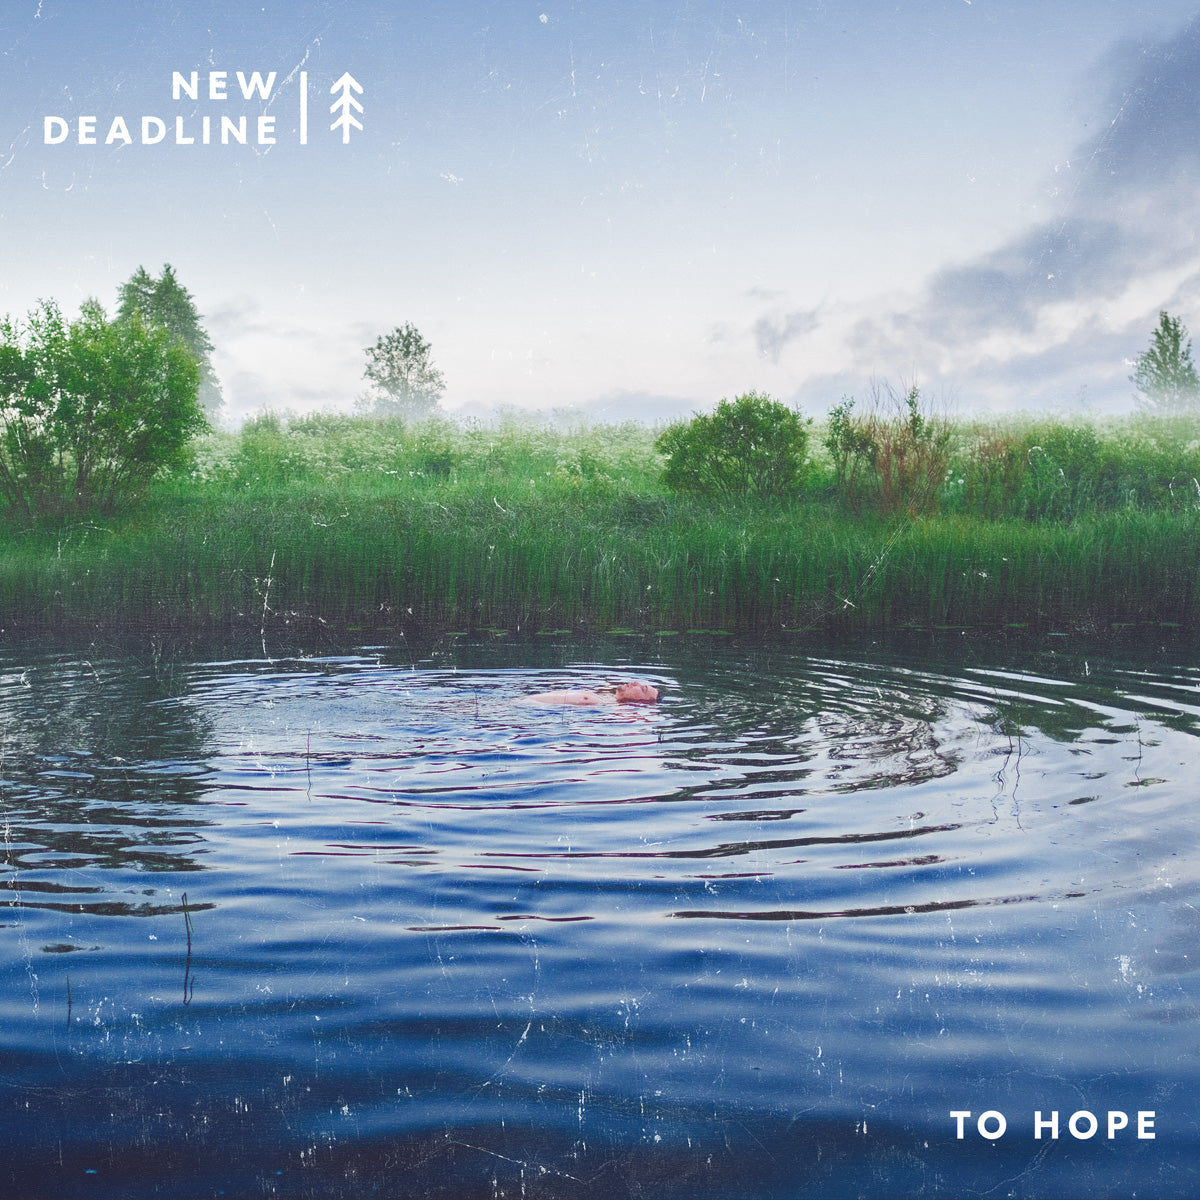 New Deadline - To Hope - CD (2018)